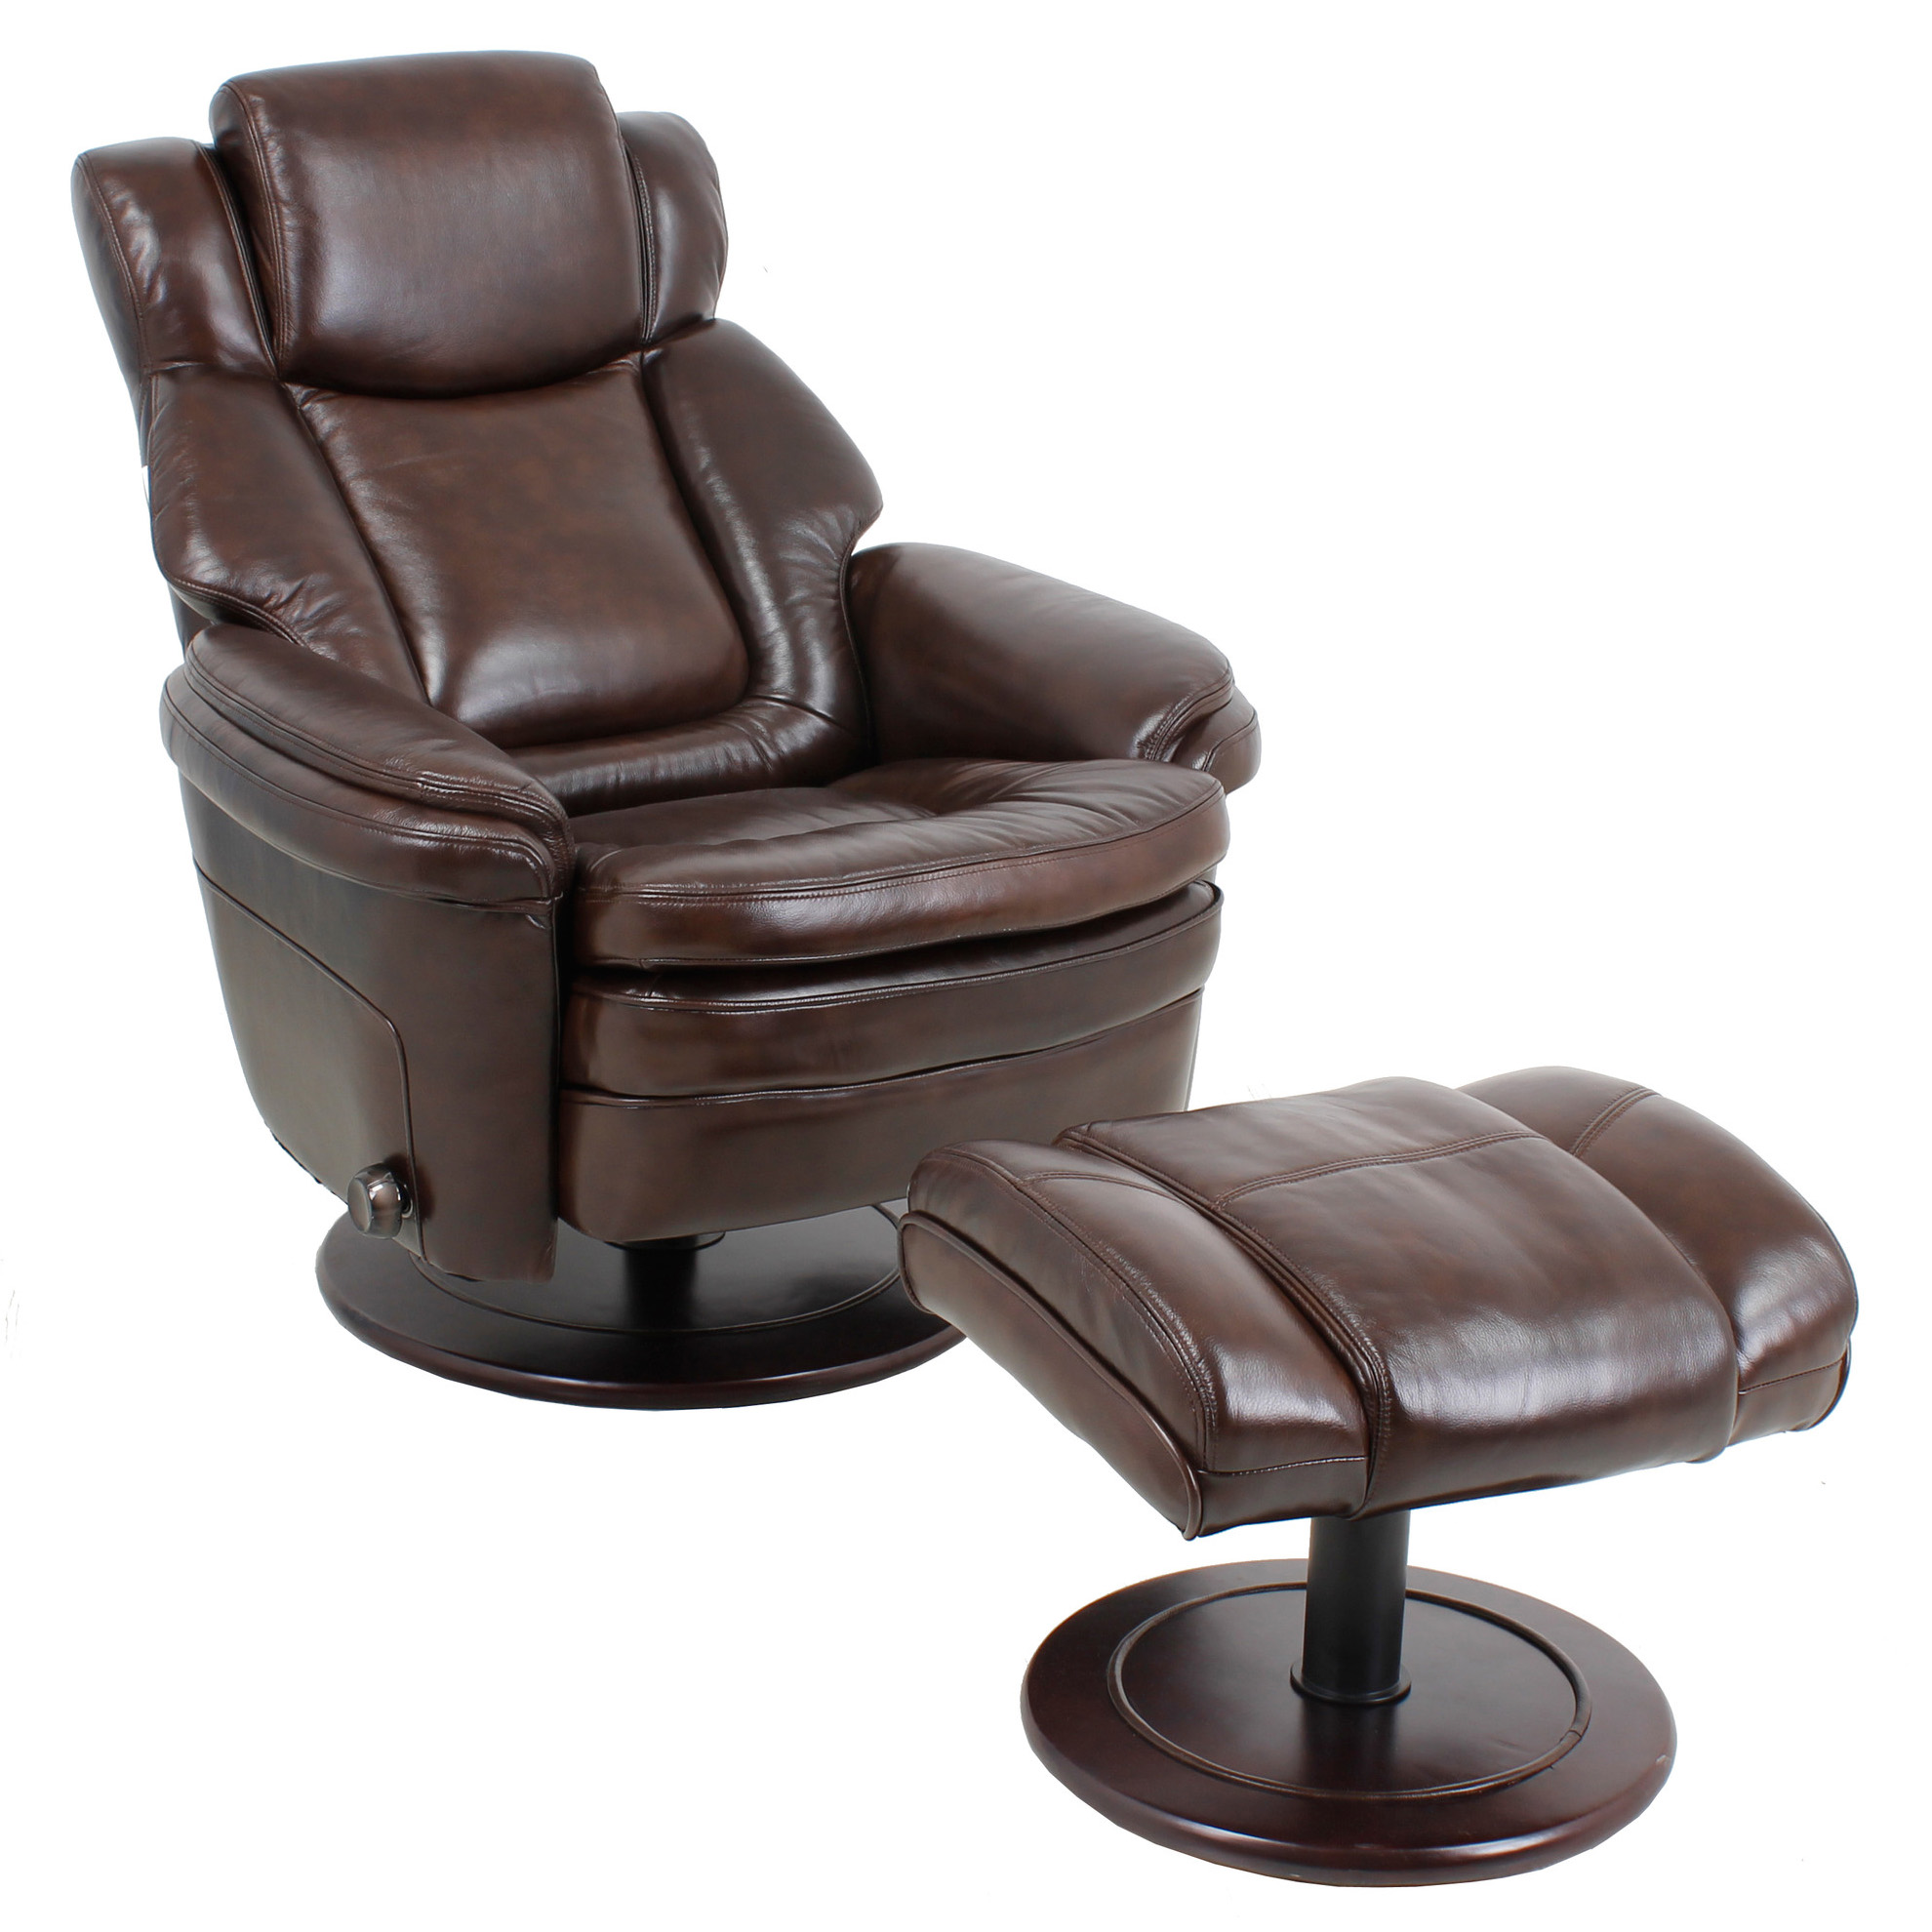 Barcalounger Eclipse II Recliner Chair and Ottoman Leather